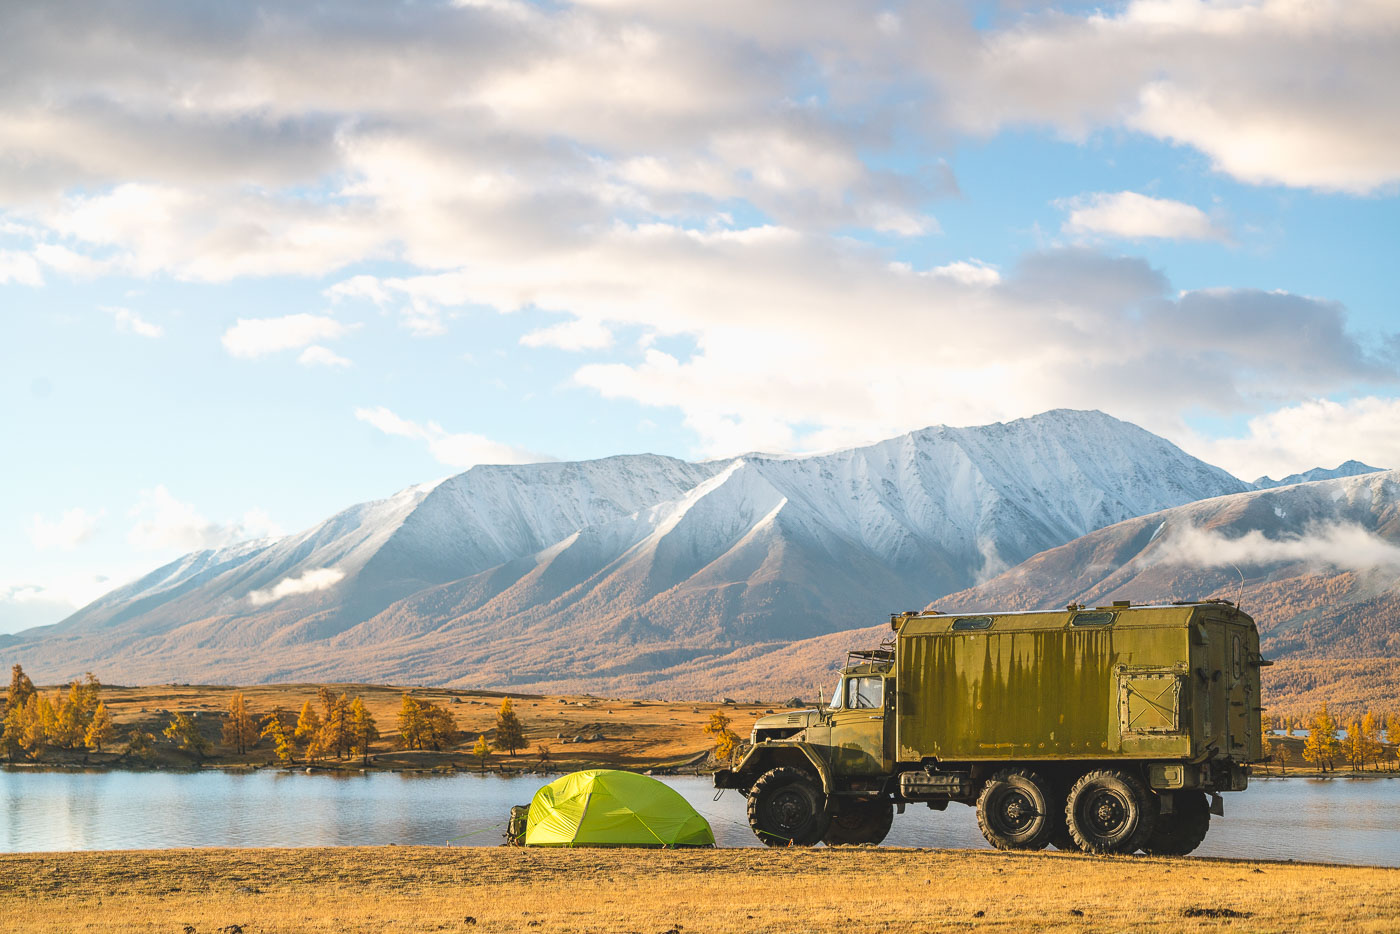 Camping in the mountains of Mongolia